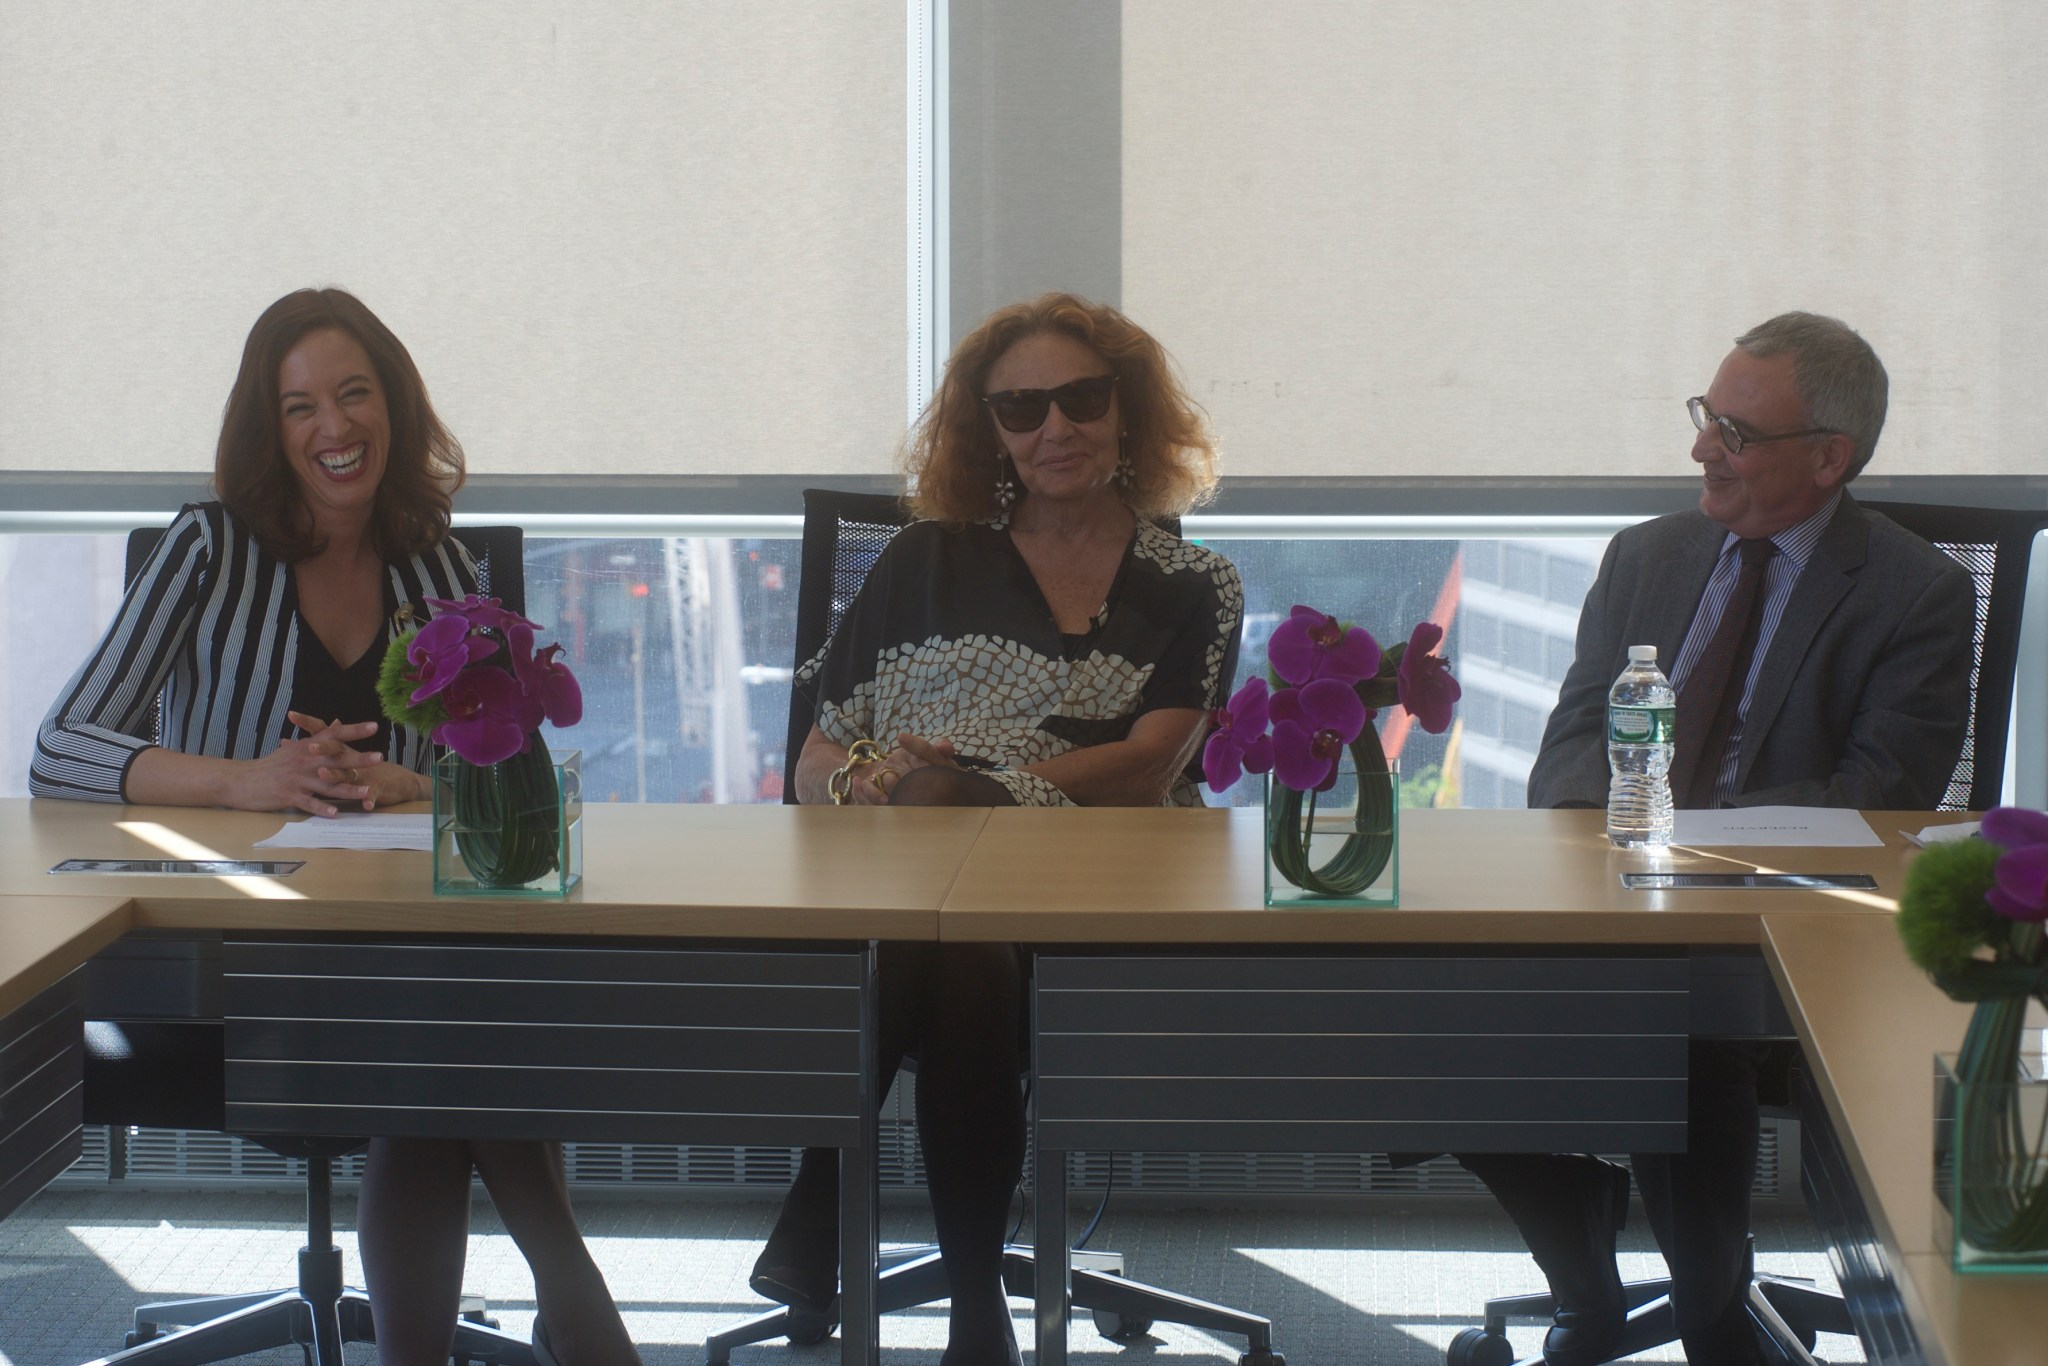 Professor Scafidi, CFDA Chair Diane von Furstenberg, and Provost Stephen Freedman seated at the announcement of the world's first master's degrees in Fashion Law